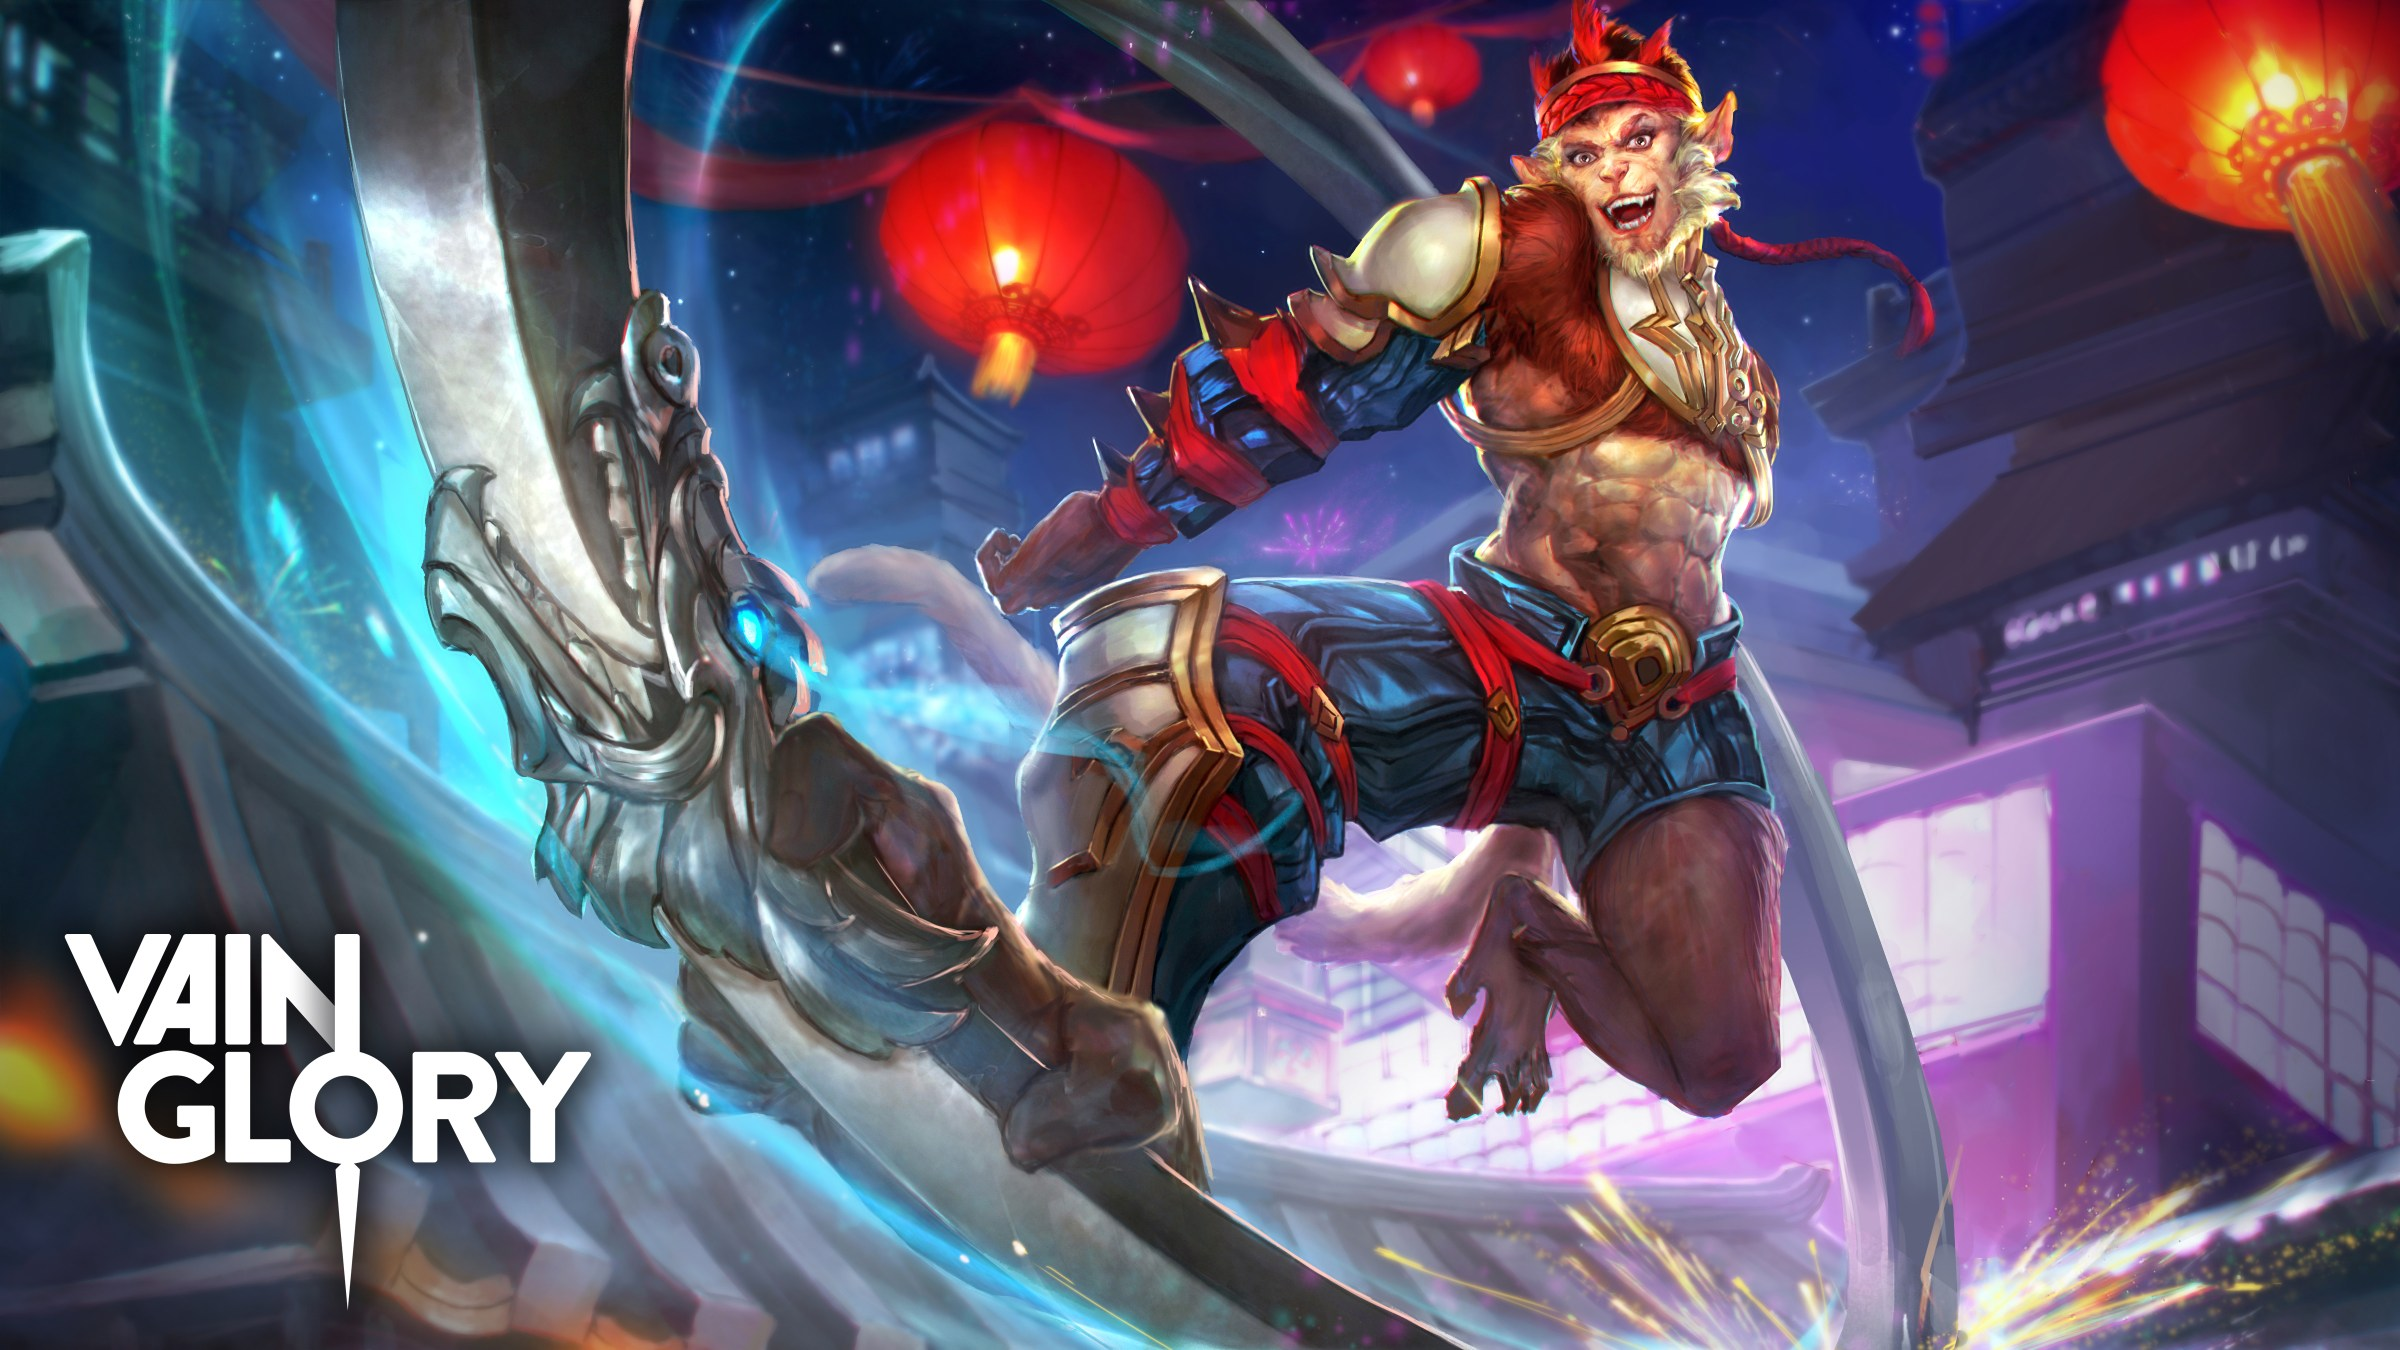 PAX South 2016: 'Vainglory' 1.14 and New Character Ozo